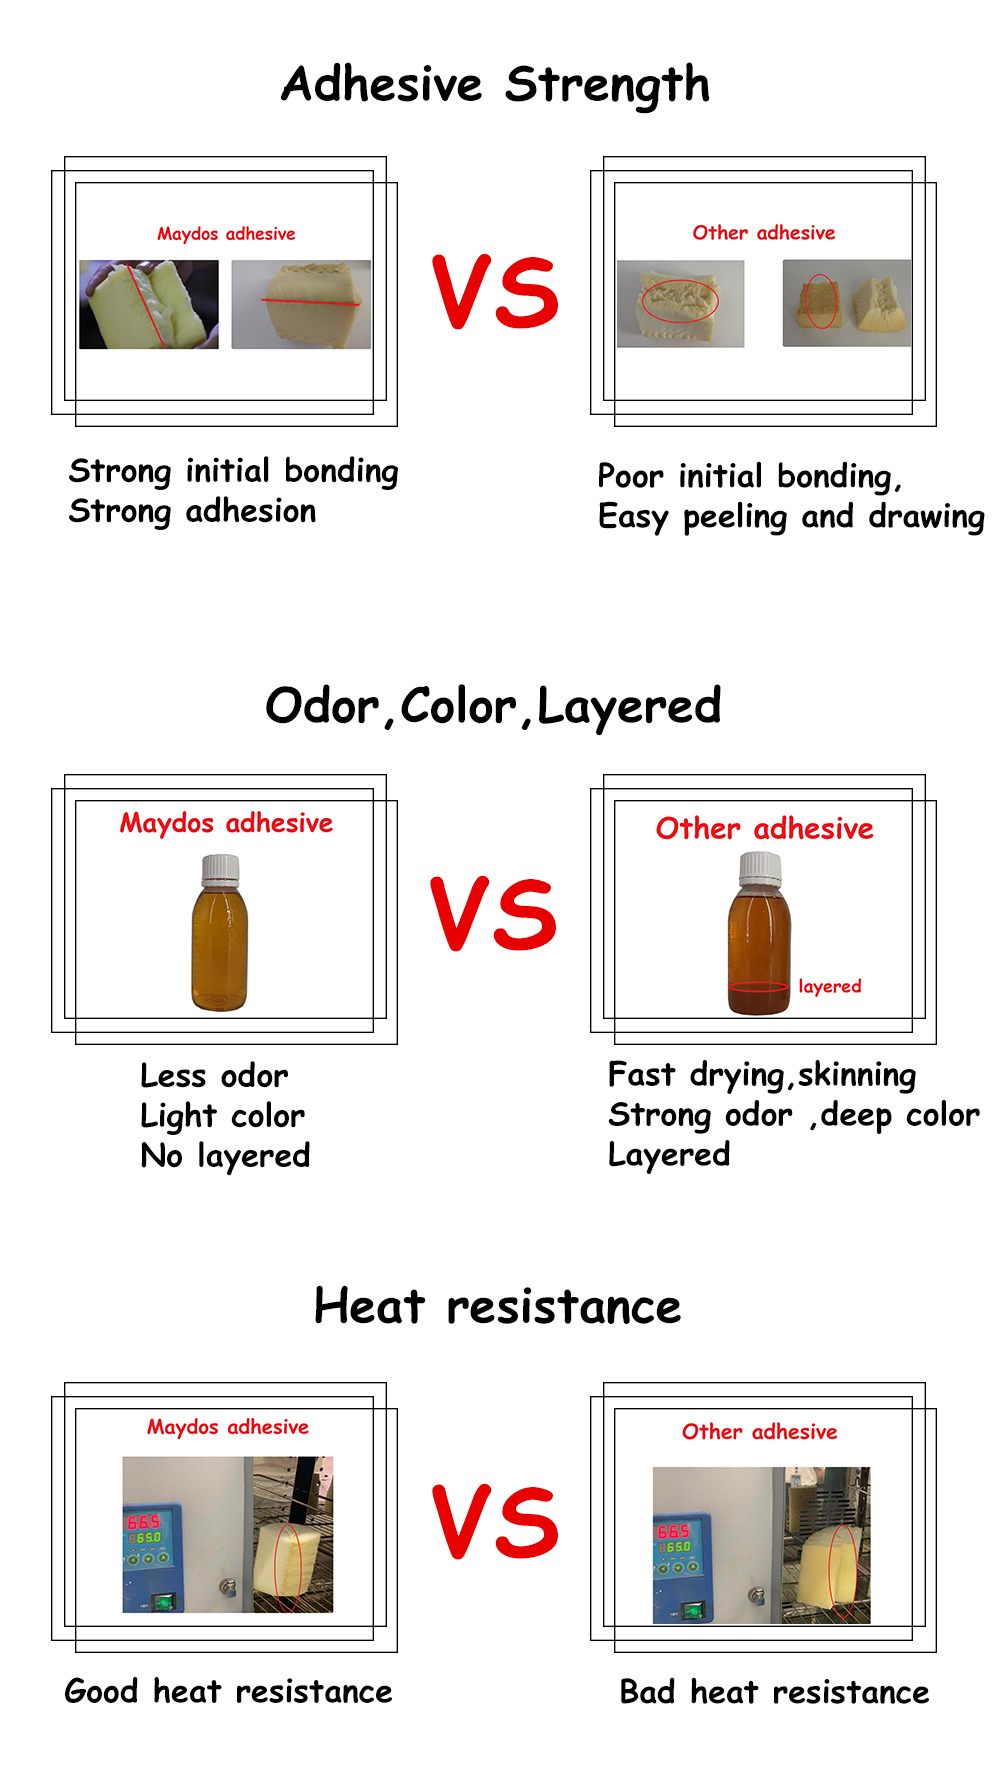 Adhesive Strength Less odor light color no layered Heat resistance